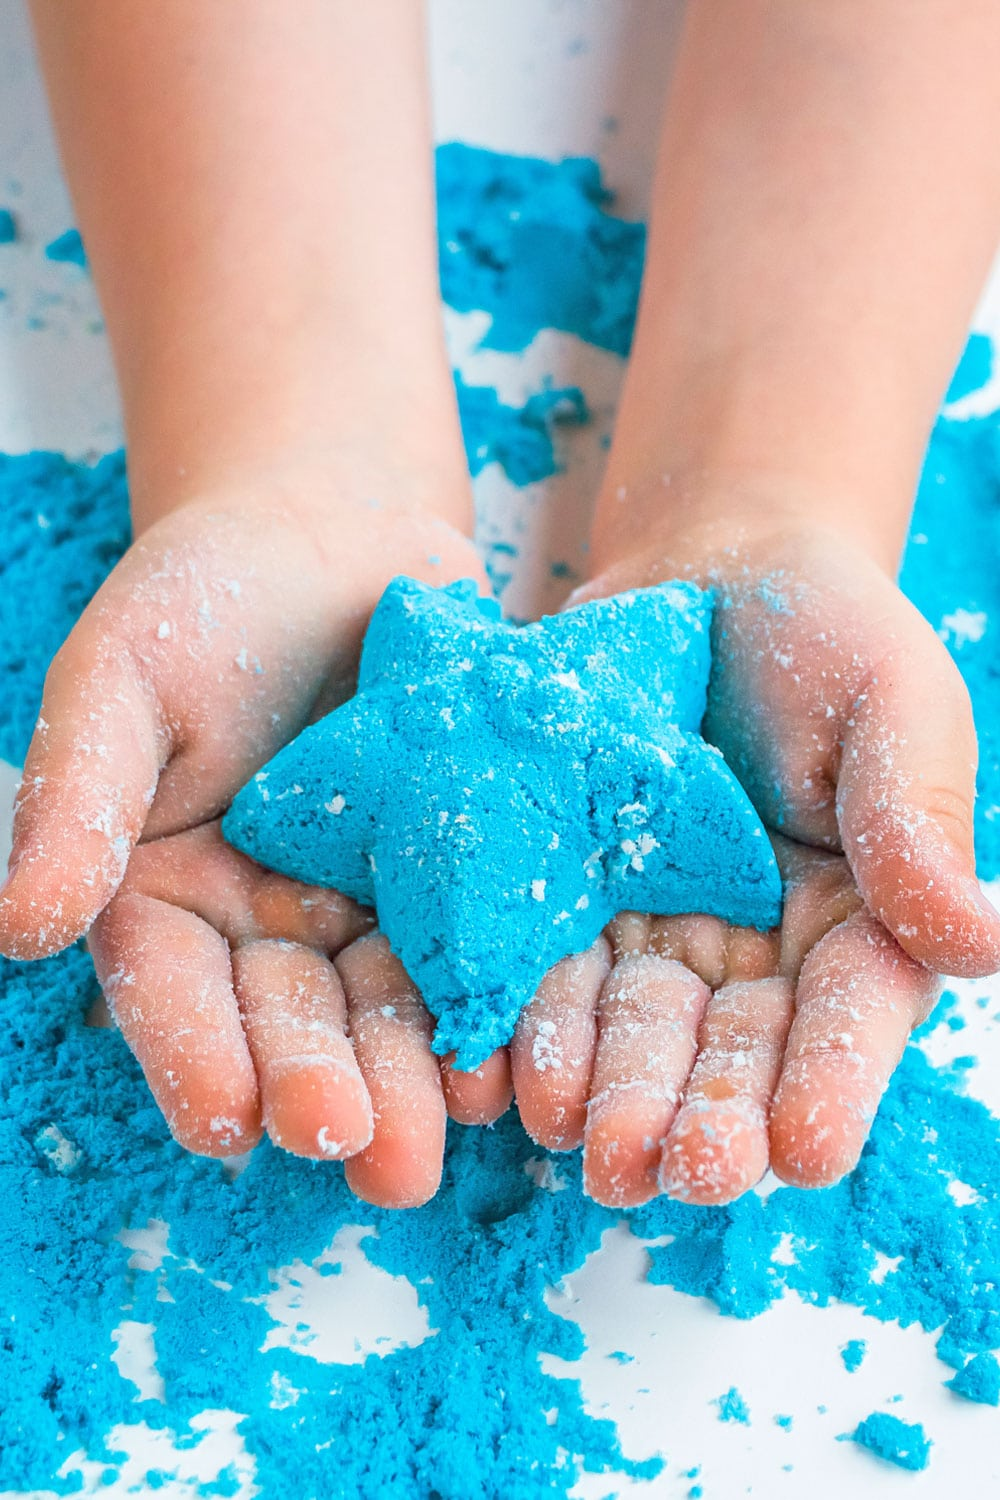 Make your own moon sand for beachy summer sensory play your kids will love! | via barley & birch